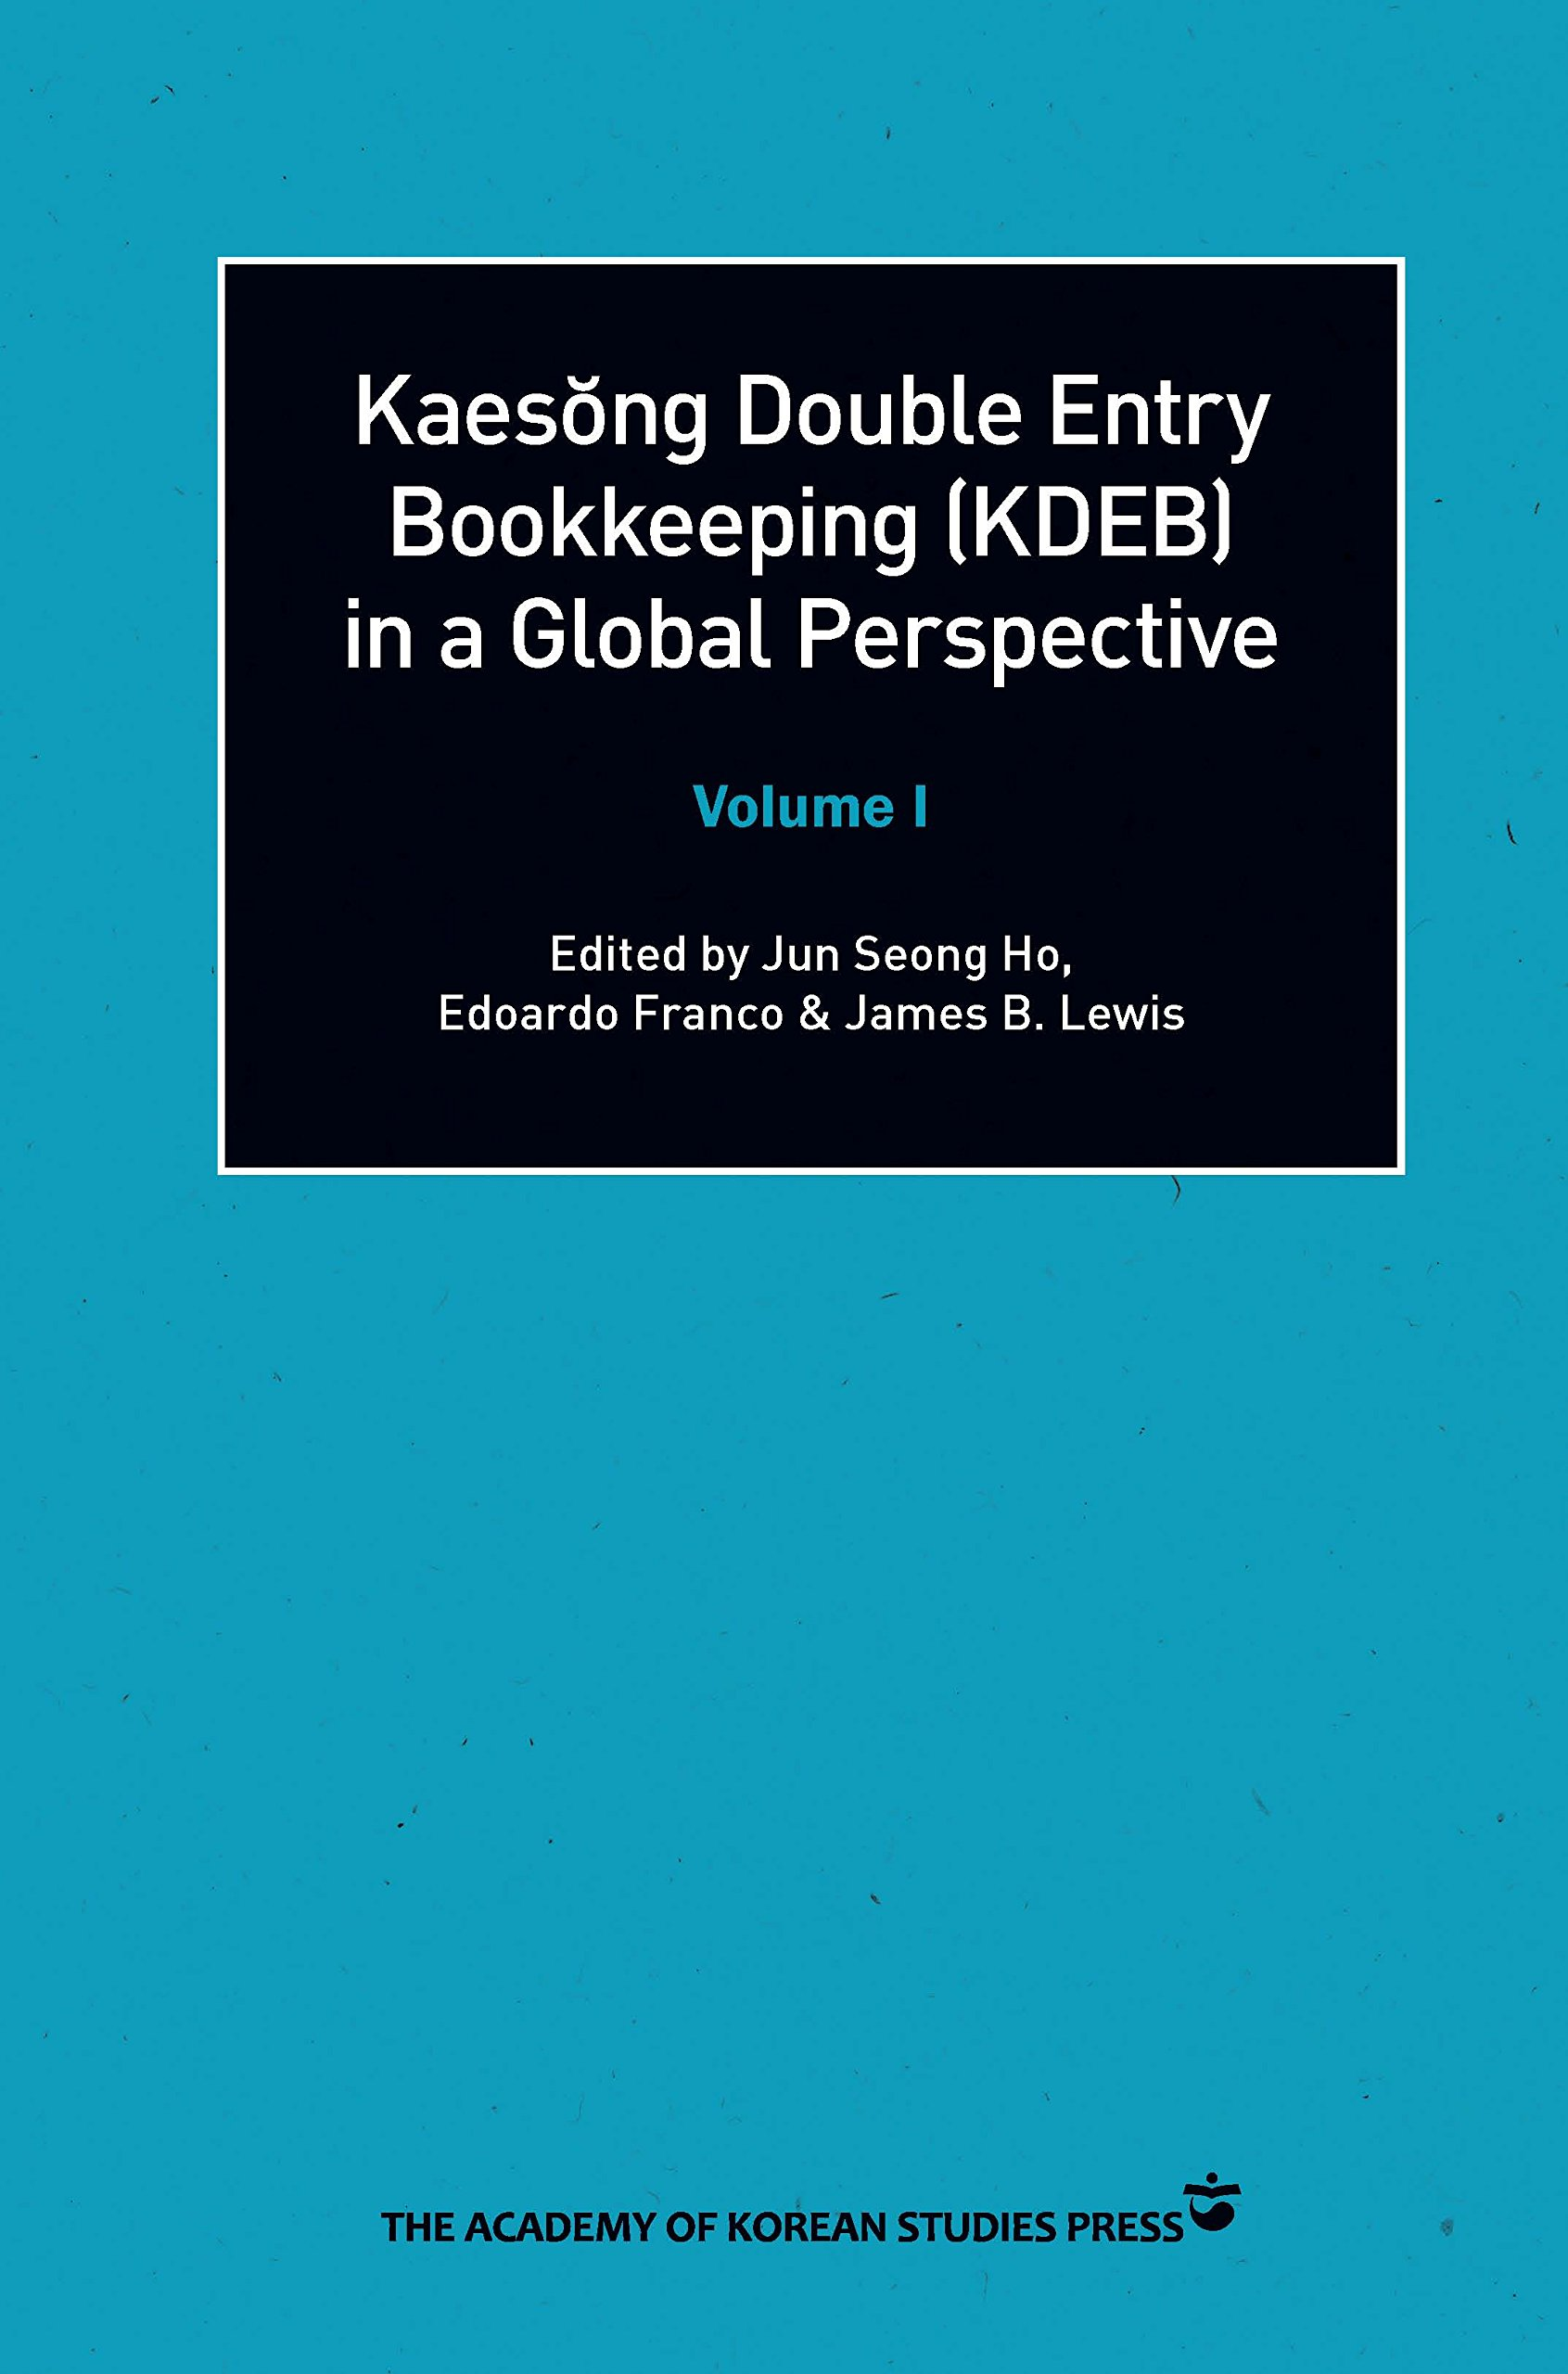 Kaesong Double Entry Bookkeeping (KDEB) in a Global Perspective Volume I pdf